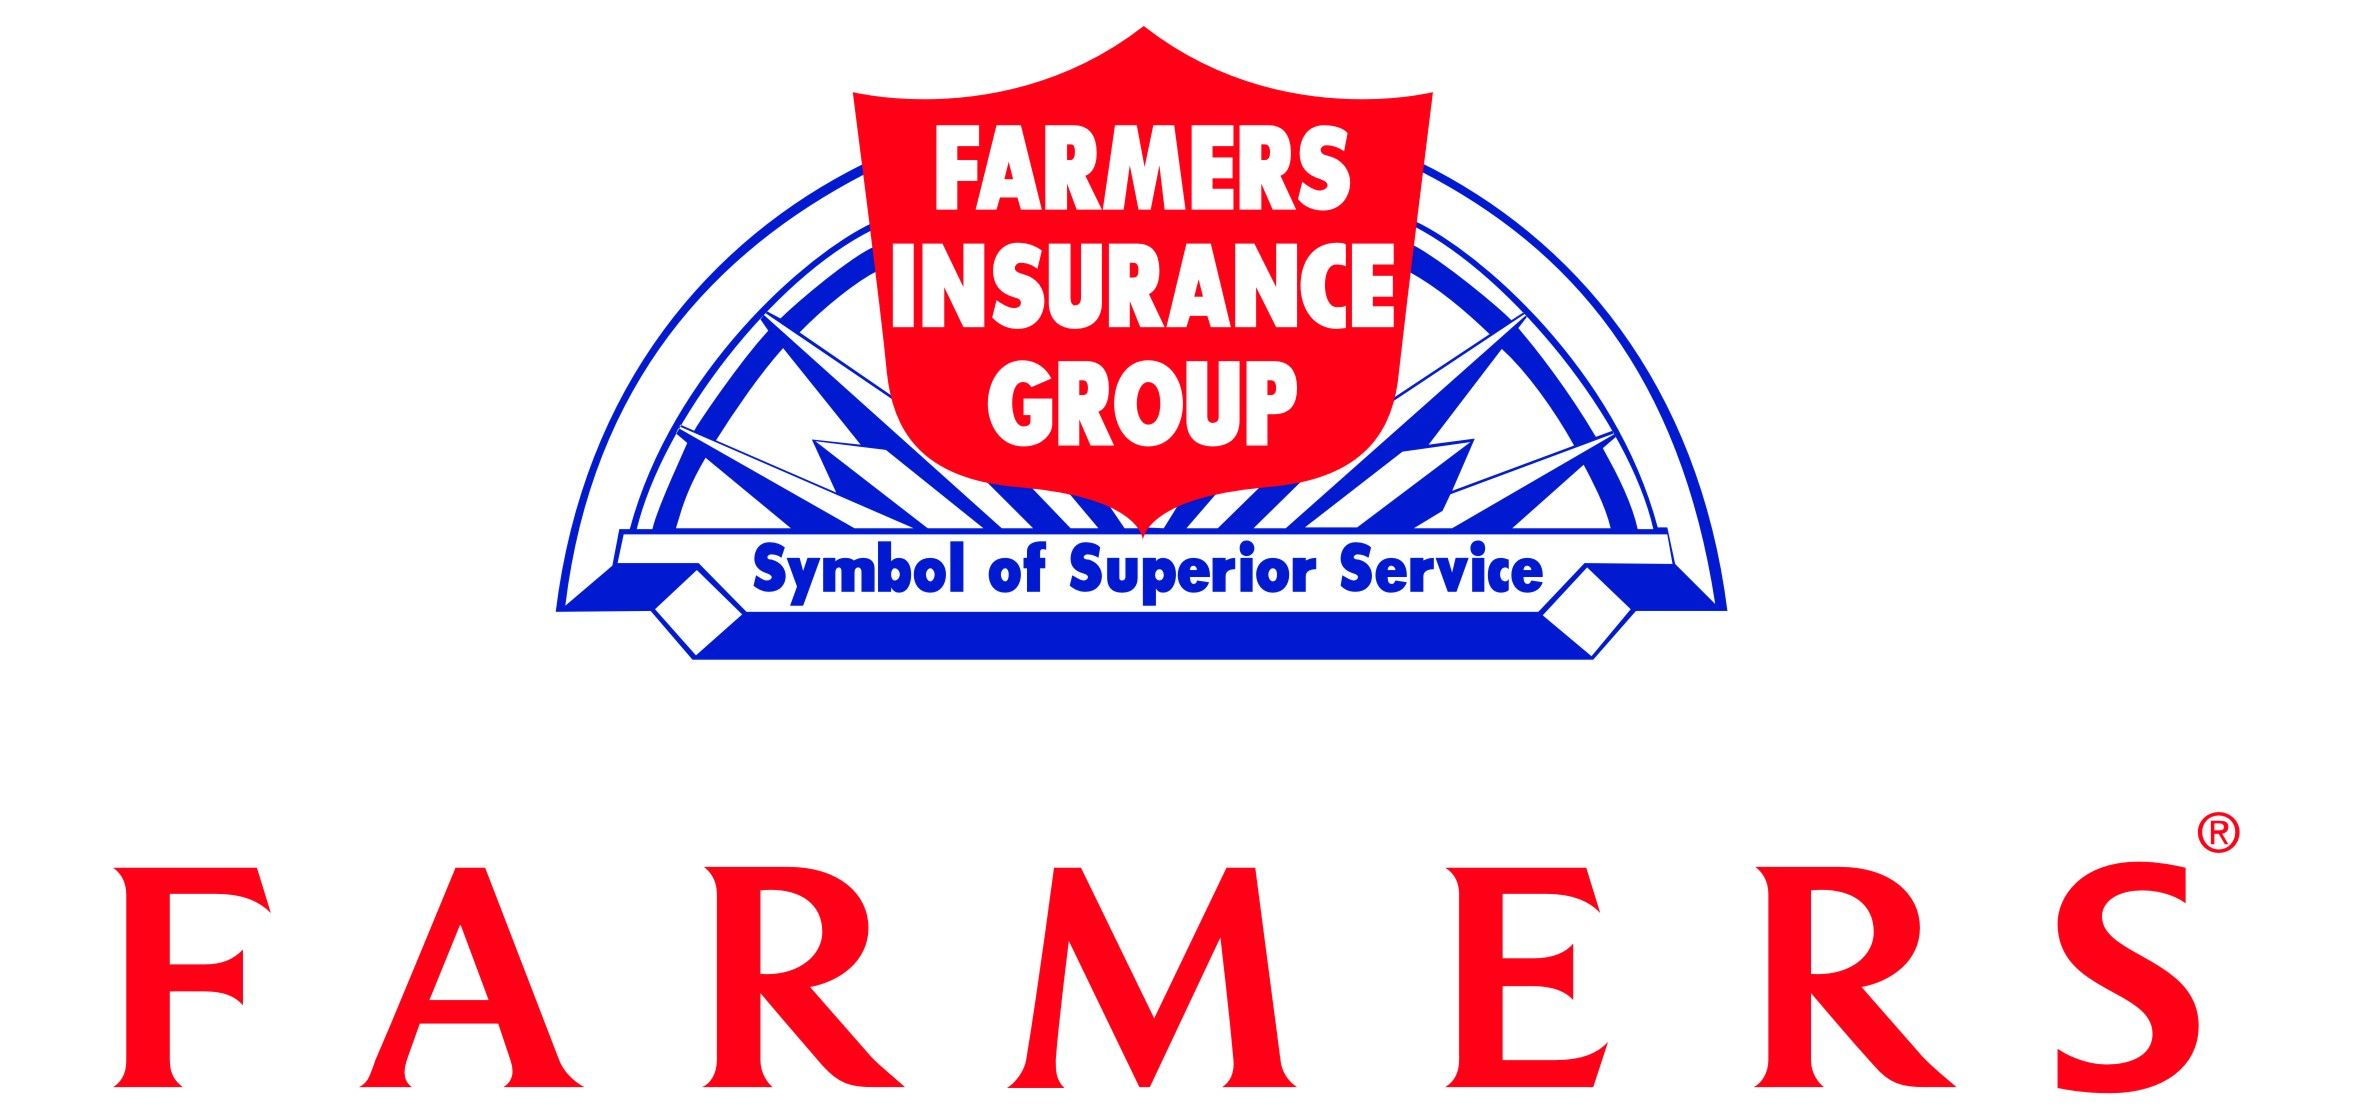 Founded In 1928 And Headquartered In Los Angeles Farmers Is One Of The Largest And Most Respec Farmers Insurance Farmers Insurance Agent Life Insurance Quotes